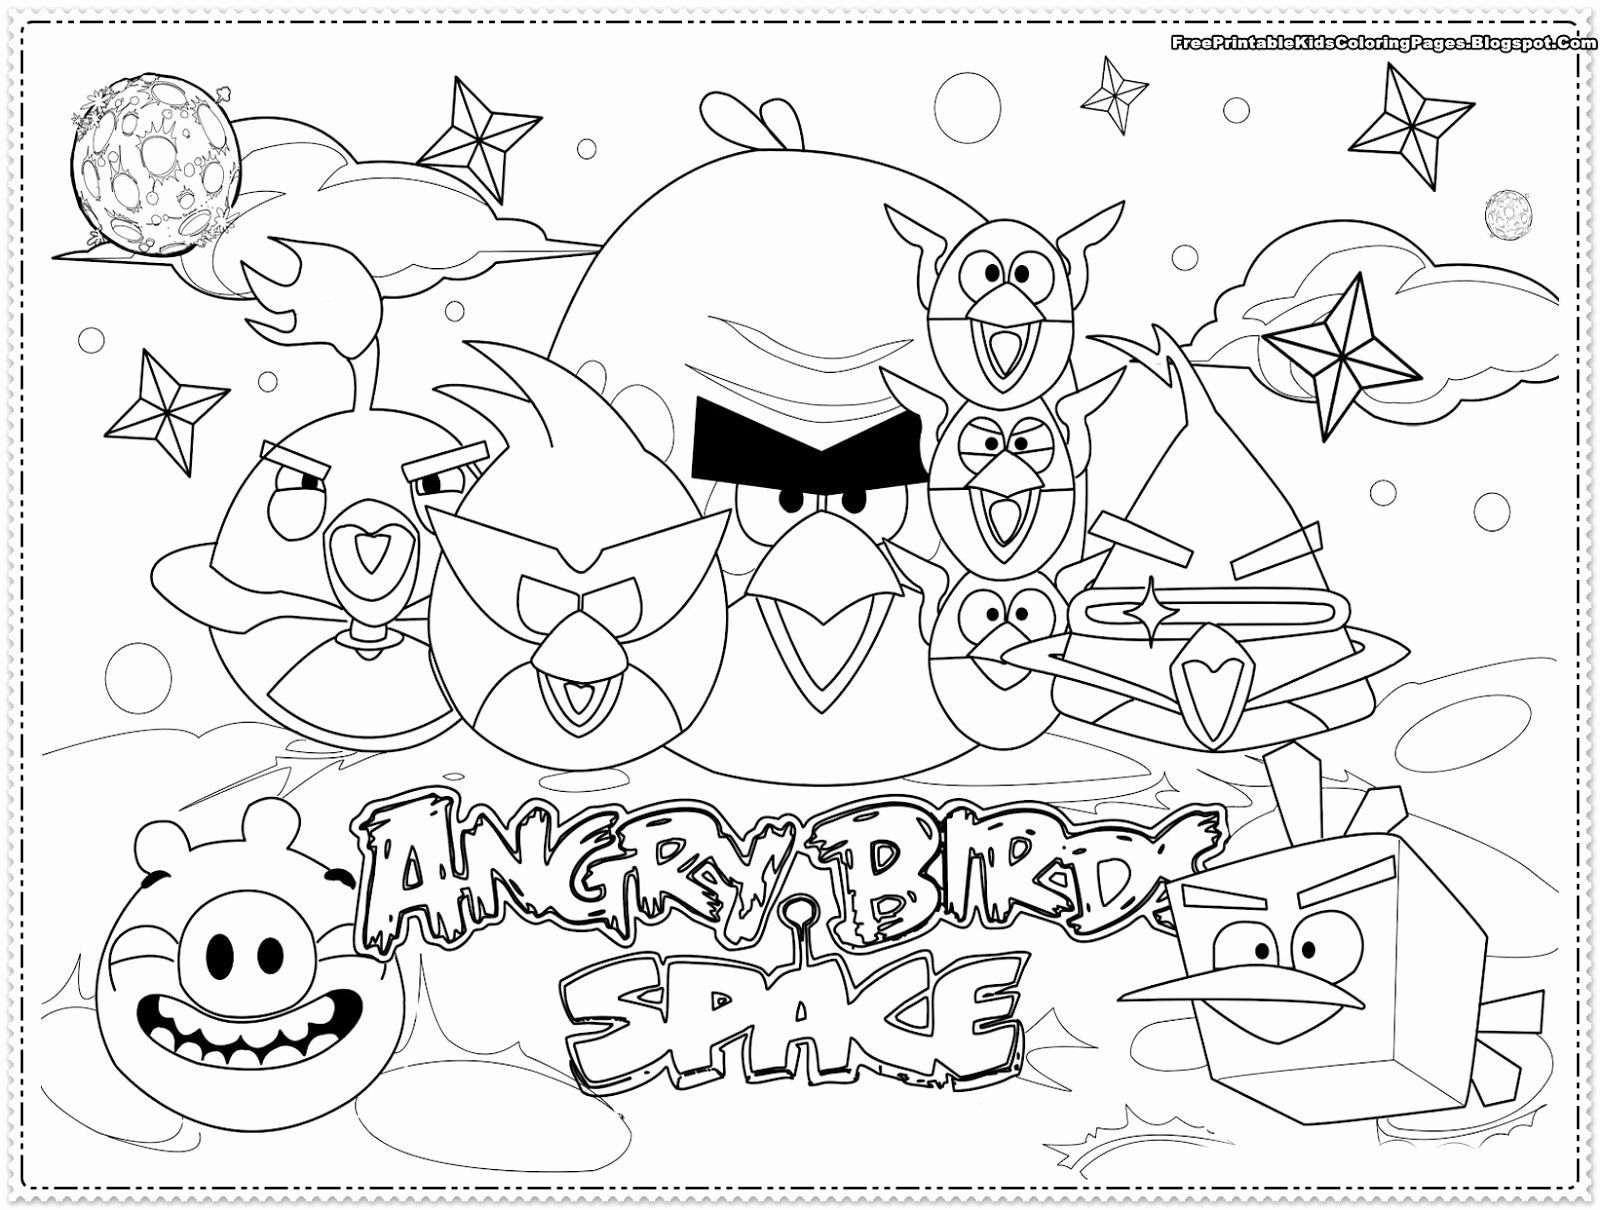 Angry Birds Coloring Book Luxury Angry Birds Kids Coloring Pages Free Printable Kids Bird Coloring Pages Space Coloring Pages Free Coloring Pages